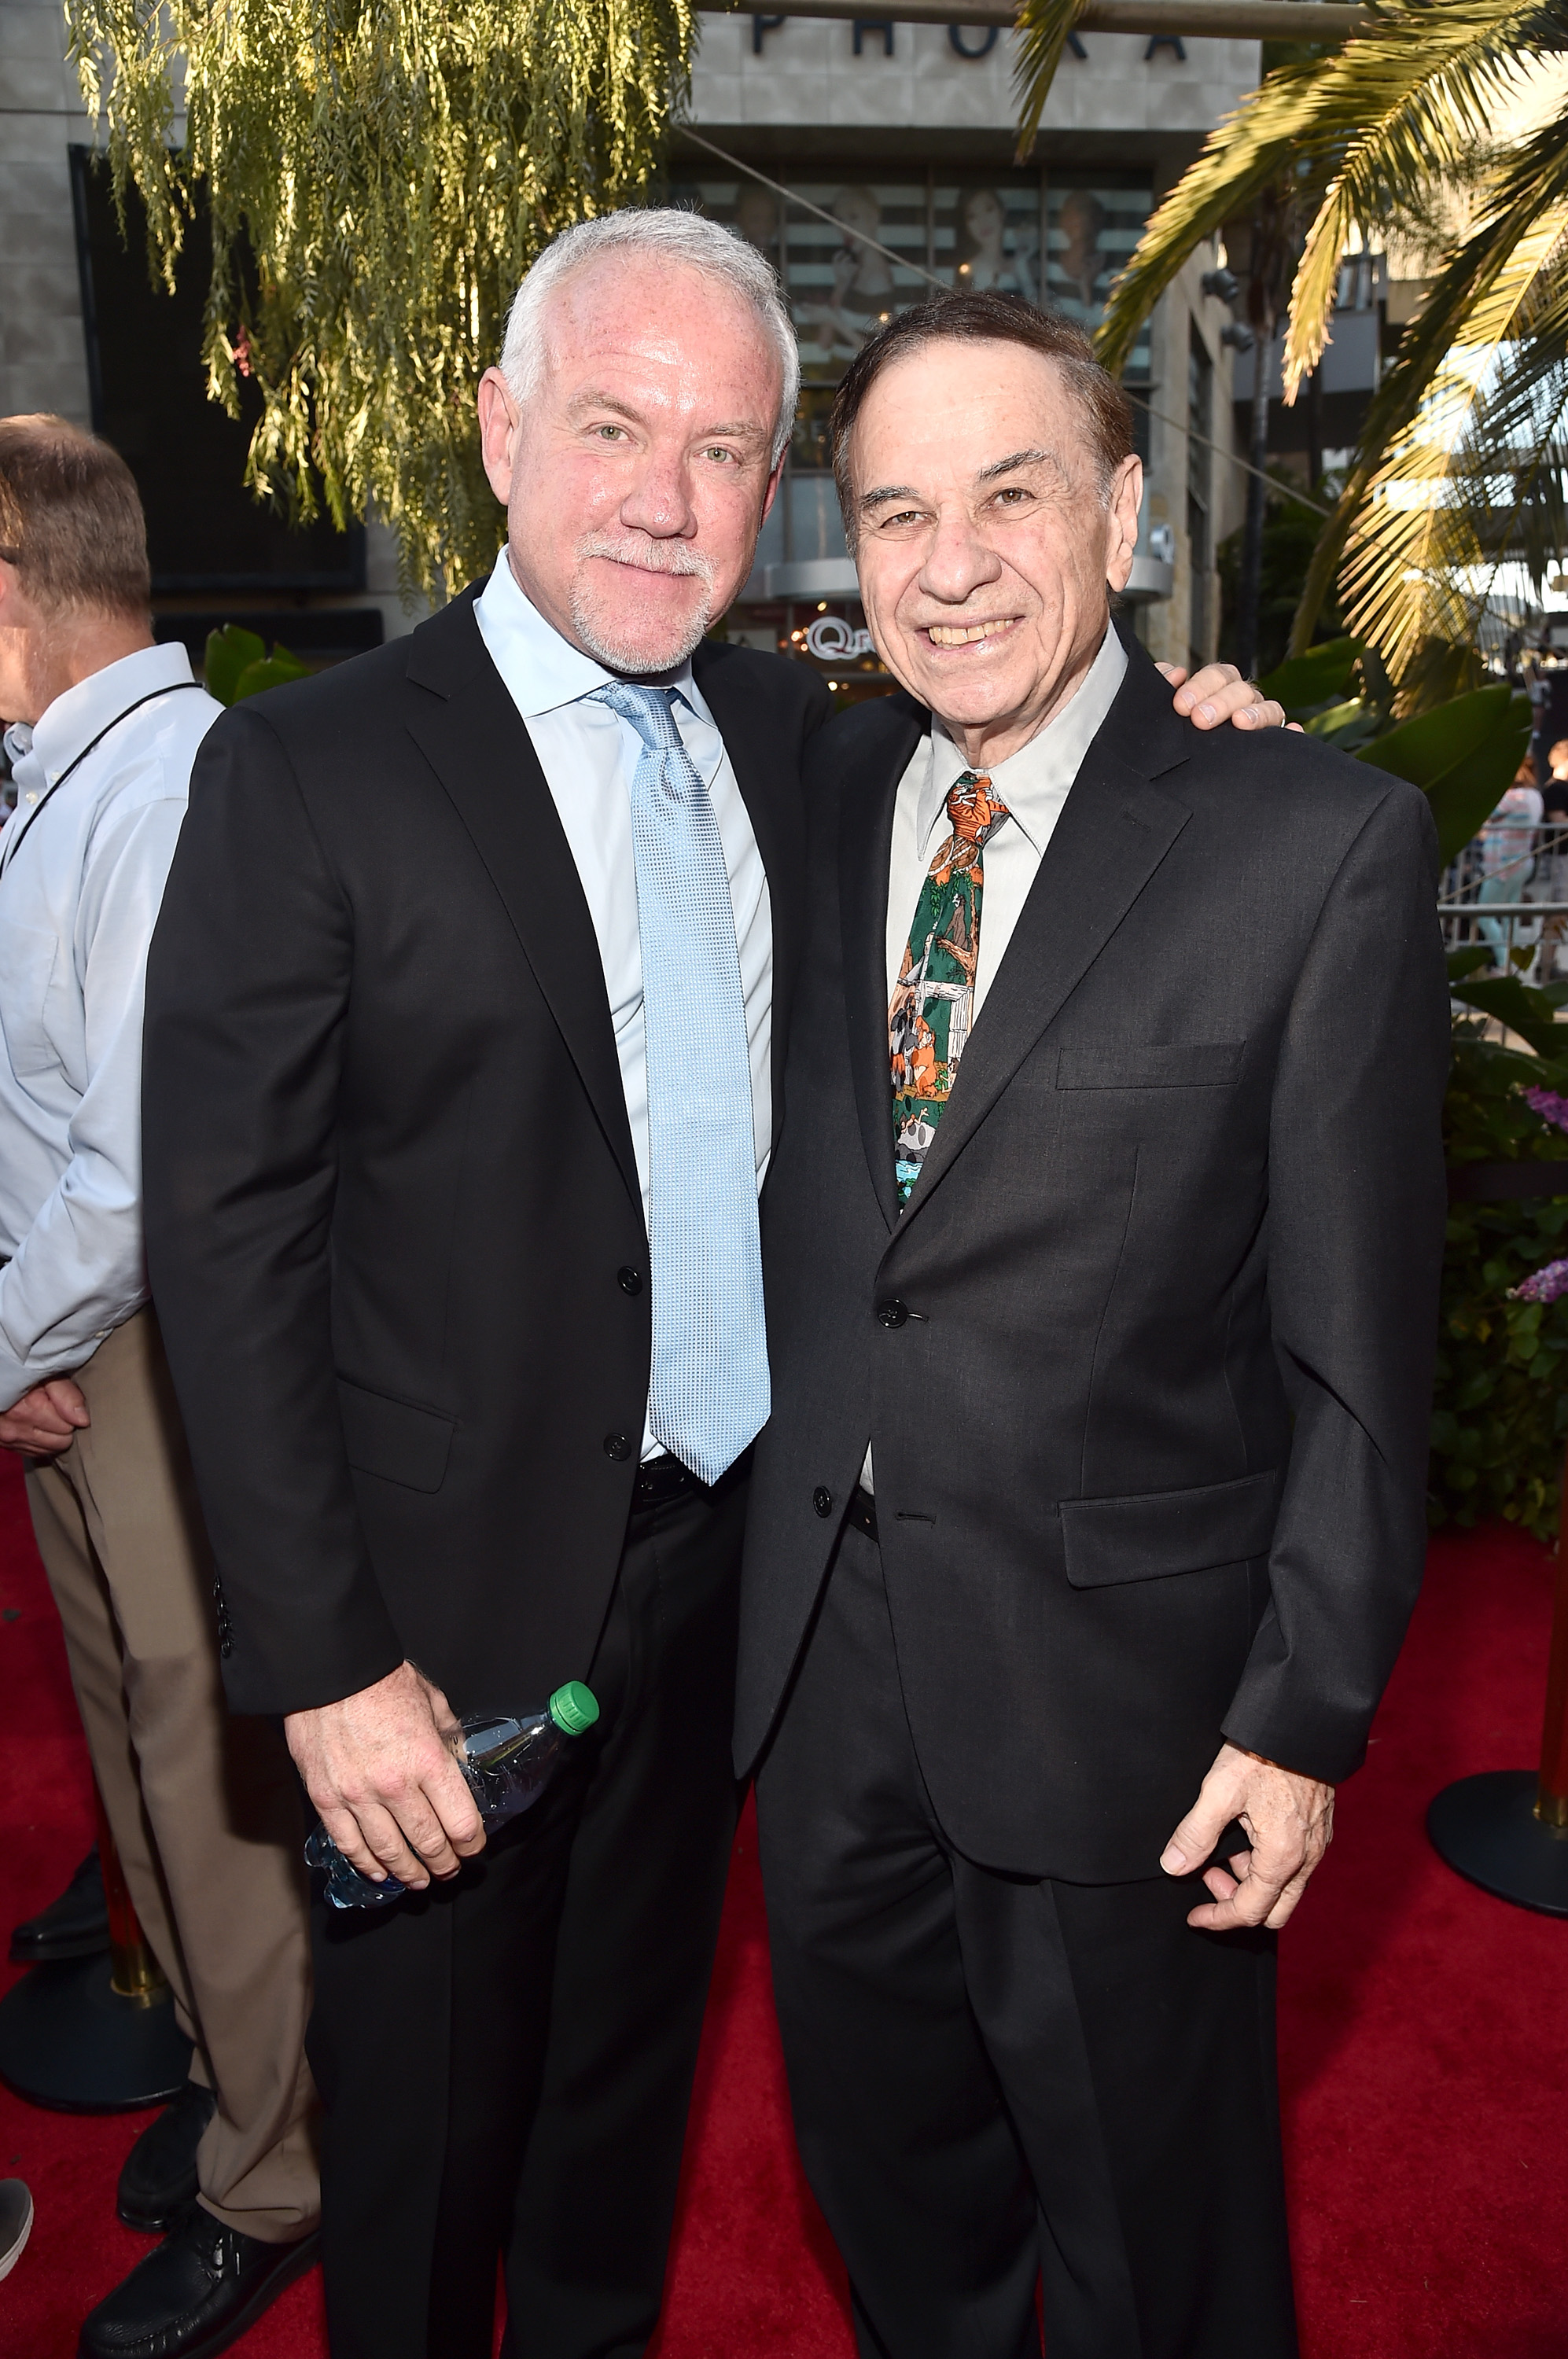 """HOLLYWOOD, CALIFORNIA - APRIL 04:  Composers John Debney (L) and Richard M. Sherman attend The World Premiere of Disney's """"THE JUNGLE BOOK"""" at the El Capitan Theatre on April 4, 2016 in Hollywood, California.  (Photo by Alberto E. Rodriguez/Getty Images for Disney) *** Local Caption *** John Debney; Richard M. Sherman"""